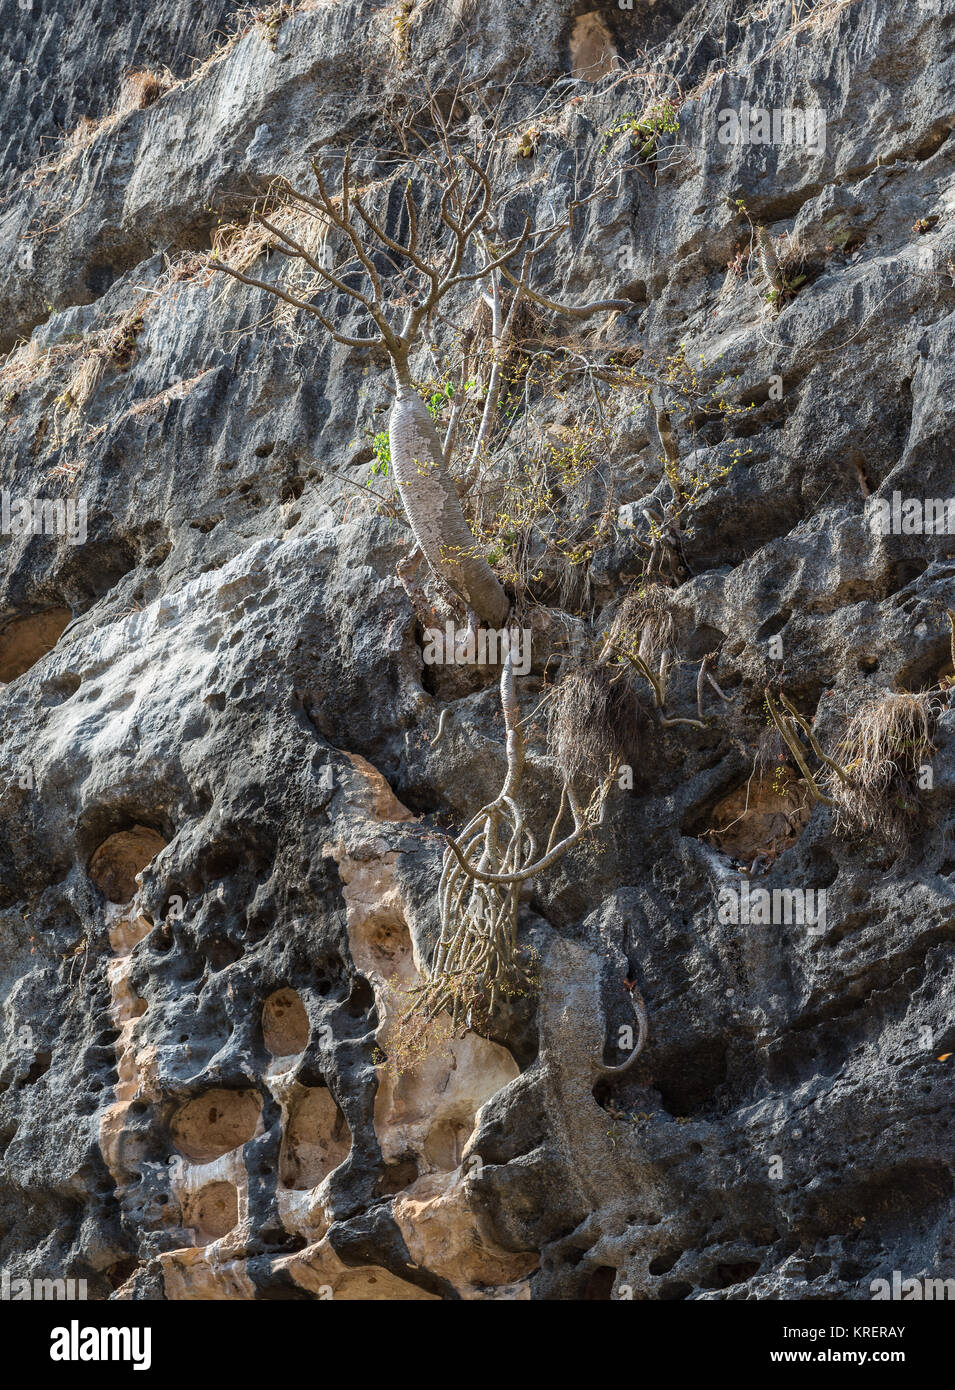 Madagascar Bottle tree (Pachypodium baronii) grows on limestone cliff in Tsingy de Bemaraha National Park. Madagascar, - Stock Image